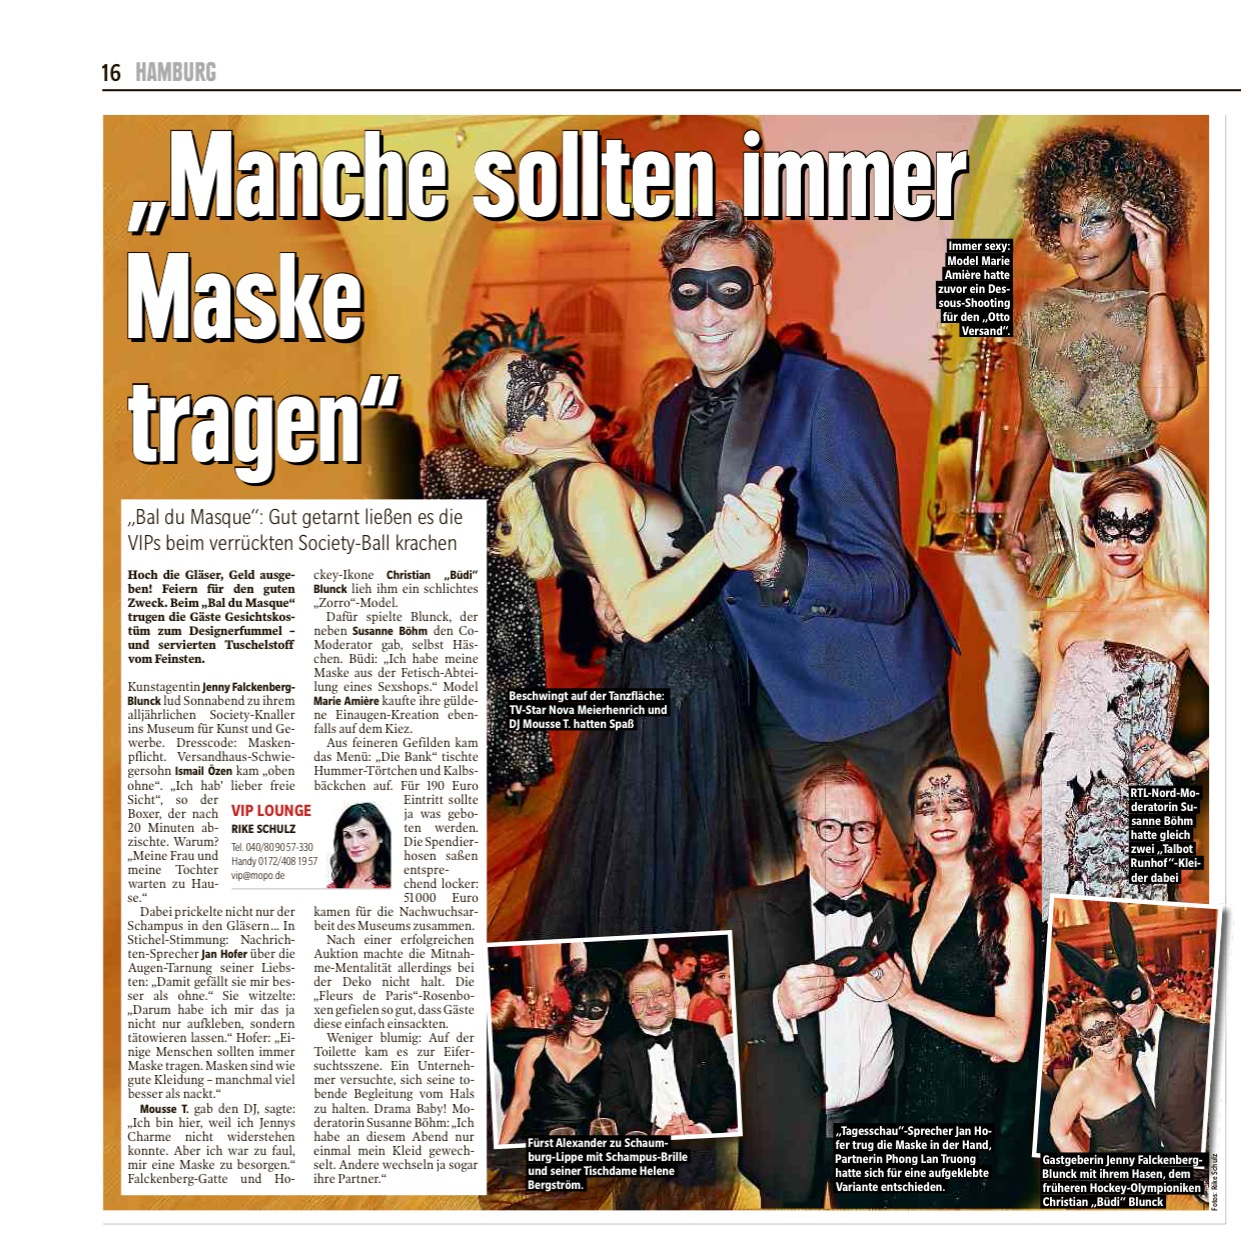 05.02.2018 Hamburger Morgenpost Bal du Masque